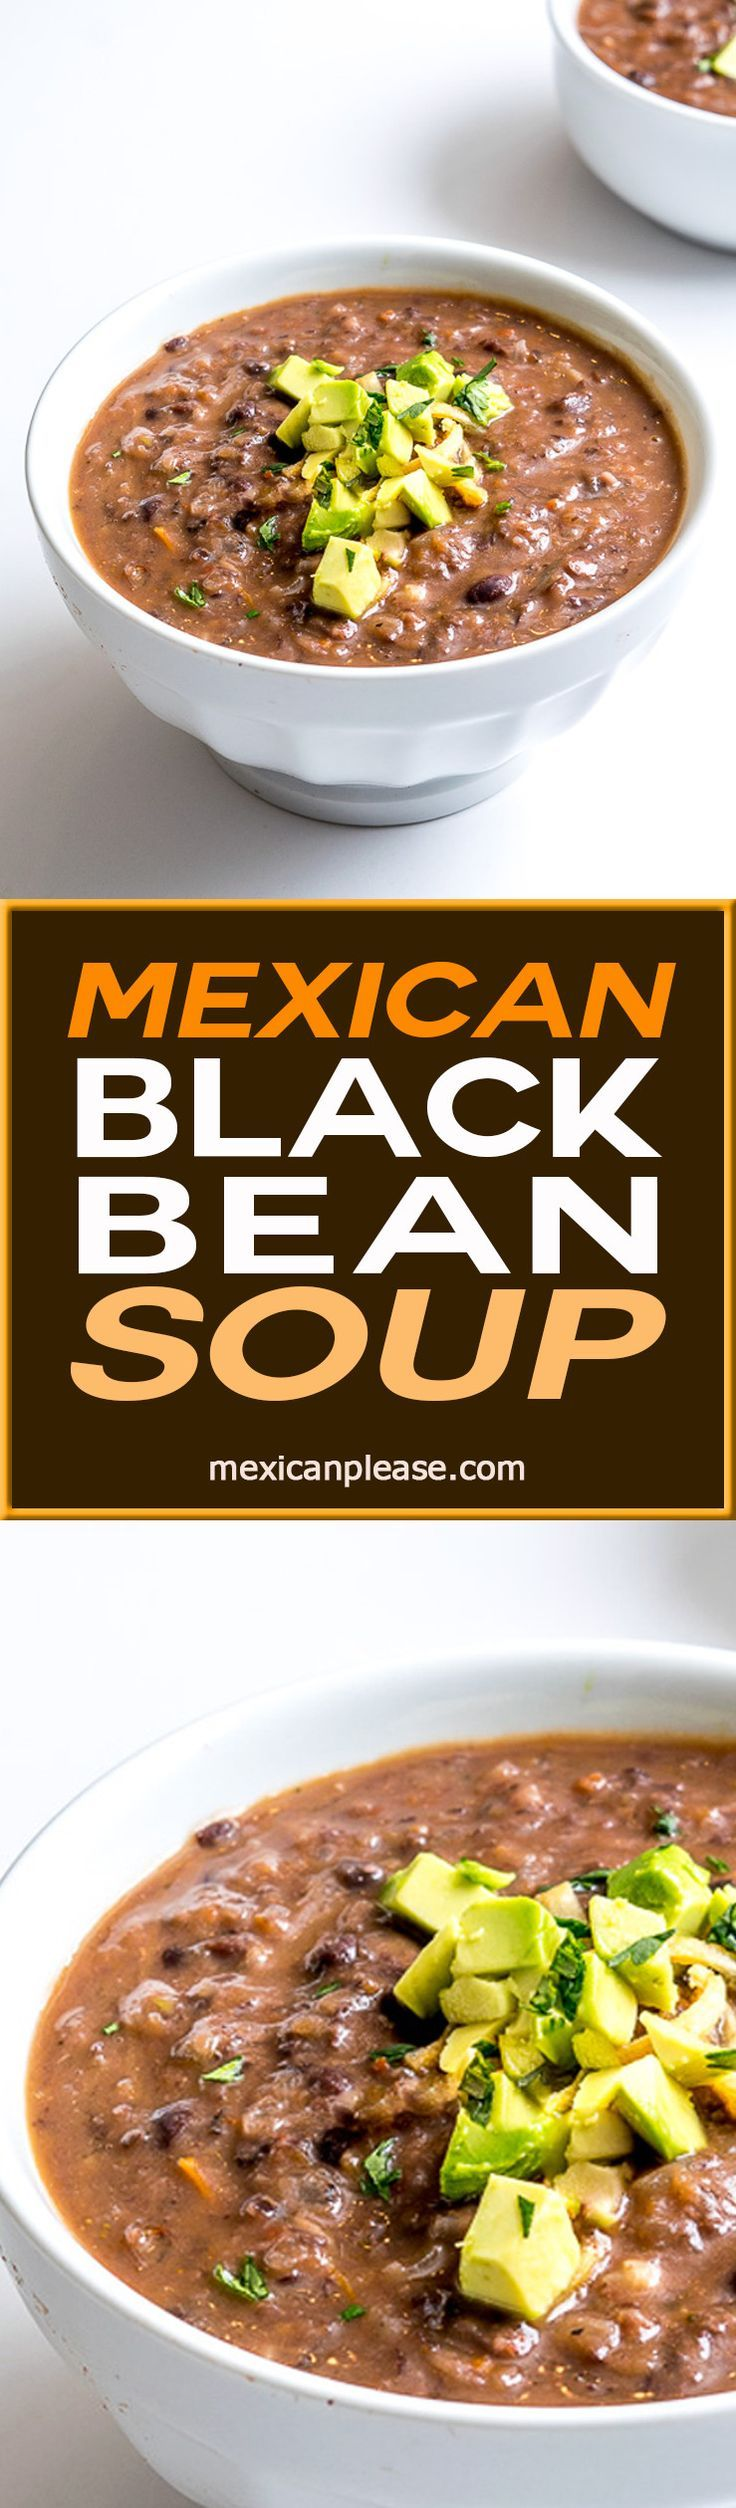 Chipotles in adobo and roasted tomatoes give this Mexican Black Bean Soup incredible flavor. I like the heat to be subtle, but you can always amp it up. Avocado bits highly recommended as a topper. So good! http://mexicanplease.com